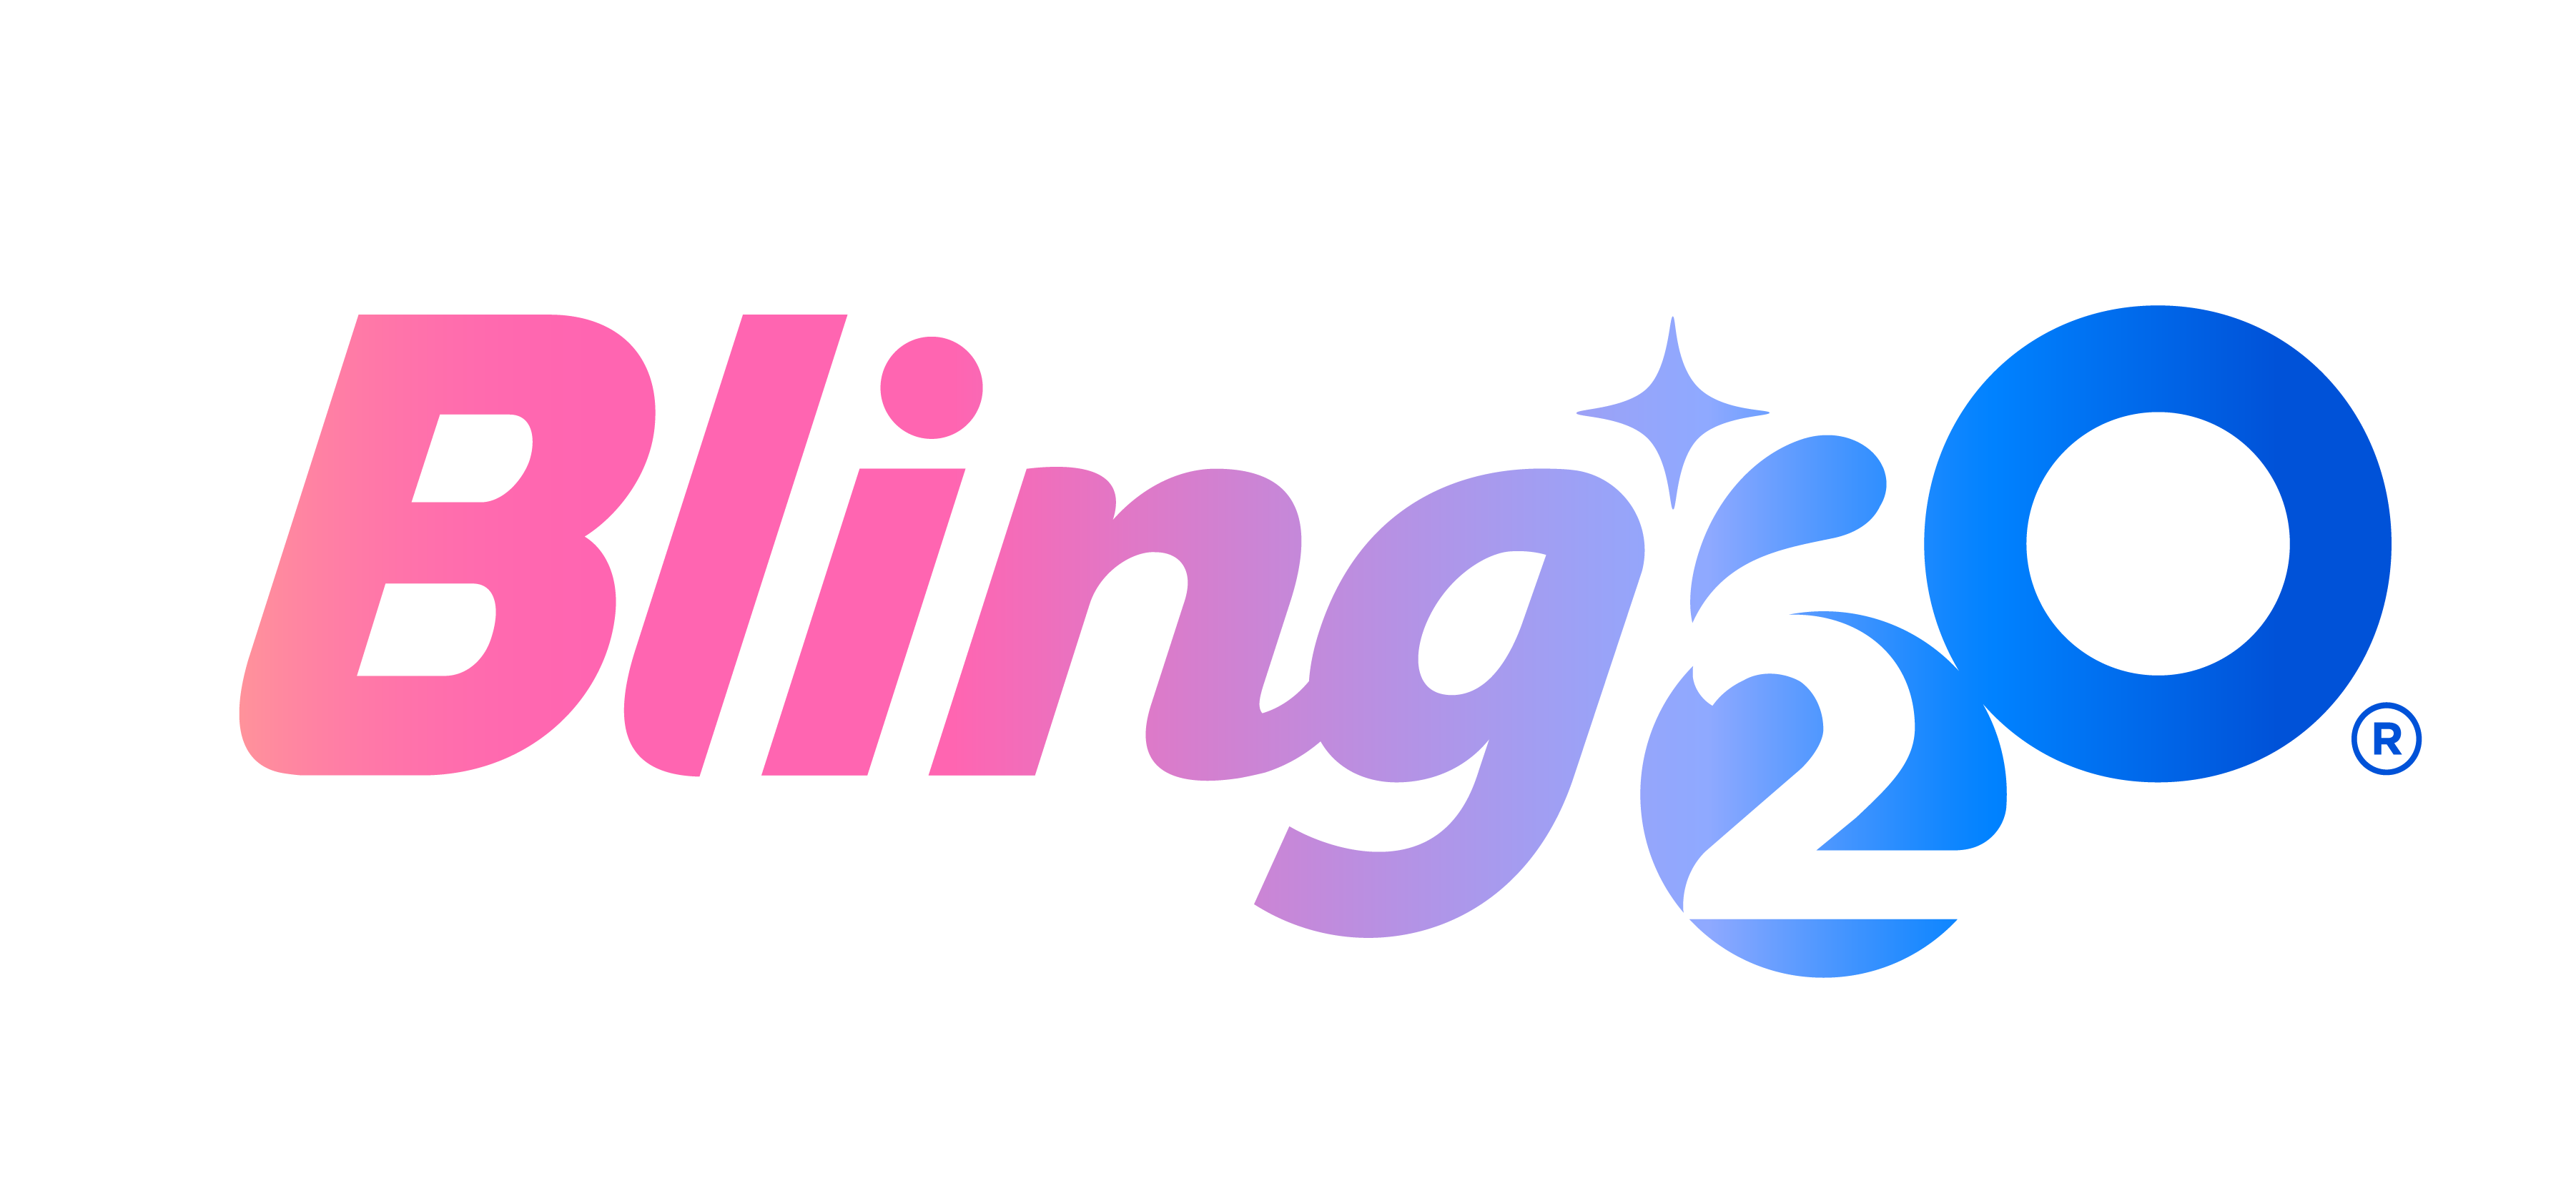 BLING2O LOGO 2020 IMAGE FOR MARKETING